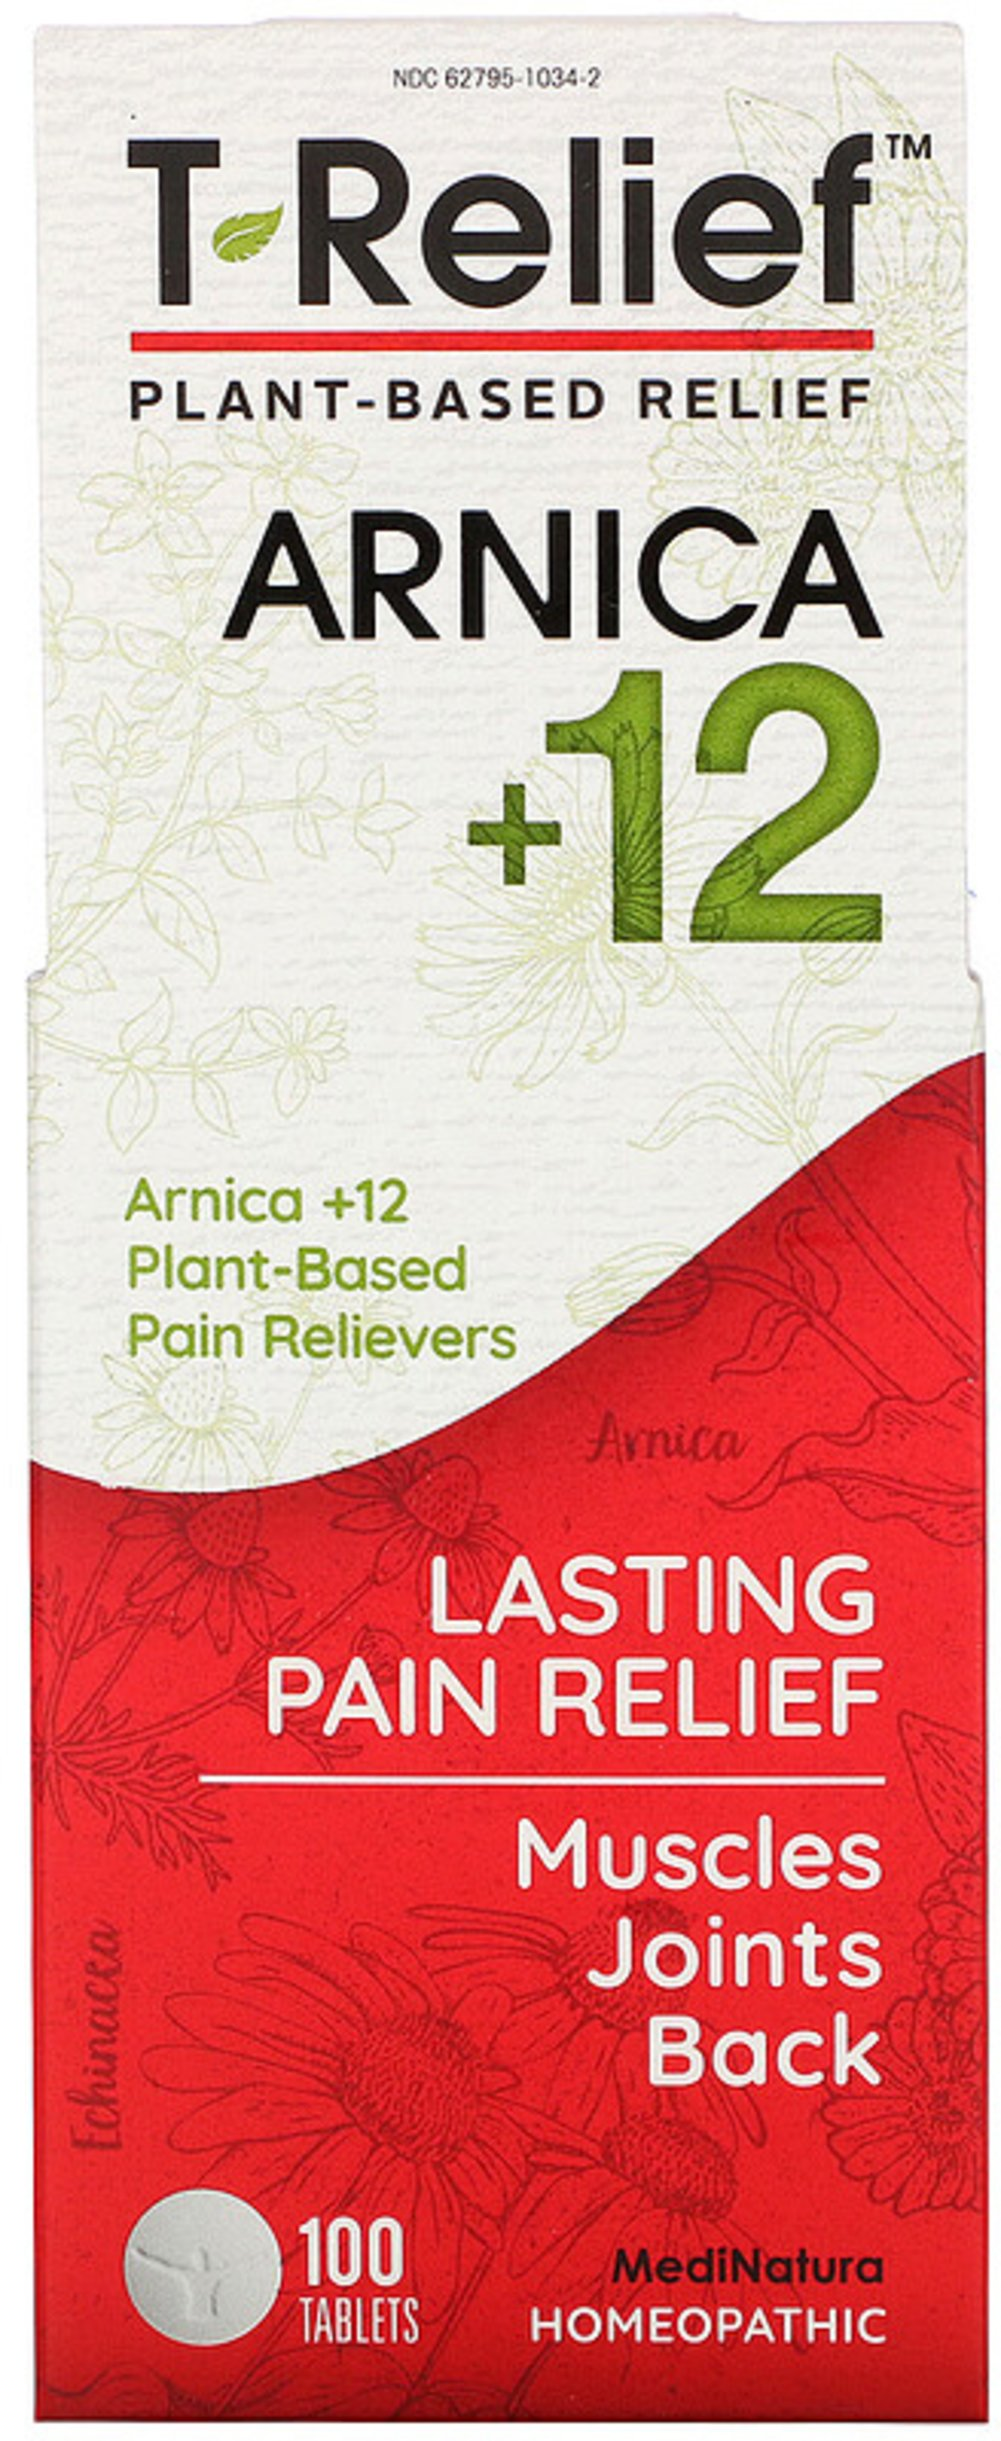 T- Relief <p><strong>From the Manufacturer's label</strong></p><p></p><p><strong>T-Relief™ </strong></p><p>Homeopathic Medicine</p><p>Pain Relief</p><p>For the temporary relief of pain due to: Muscular Pain, Joint Pain, Sport Injuries, Bruising</p><p>T- Relief™ has been relieving pain for over 70 years, and is sold in more than 60 countries worldwide. For topical use, T- Relief™  is also ava